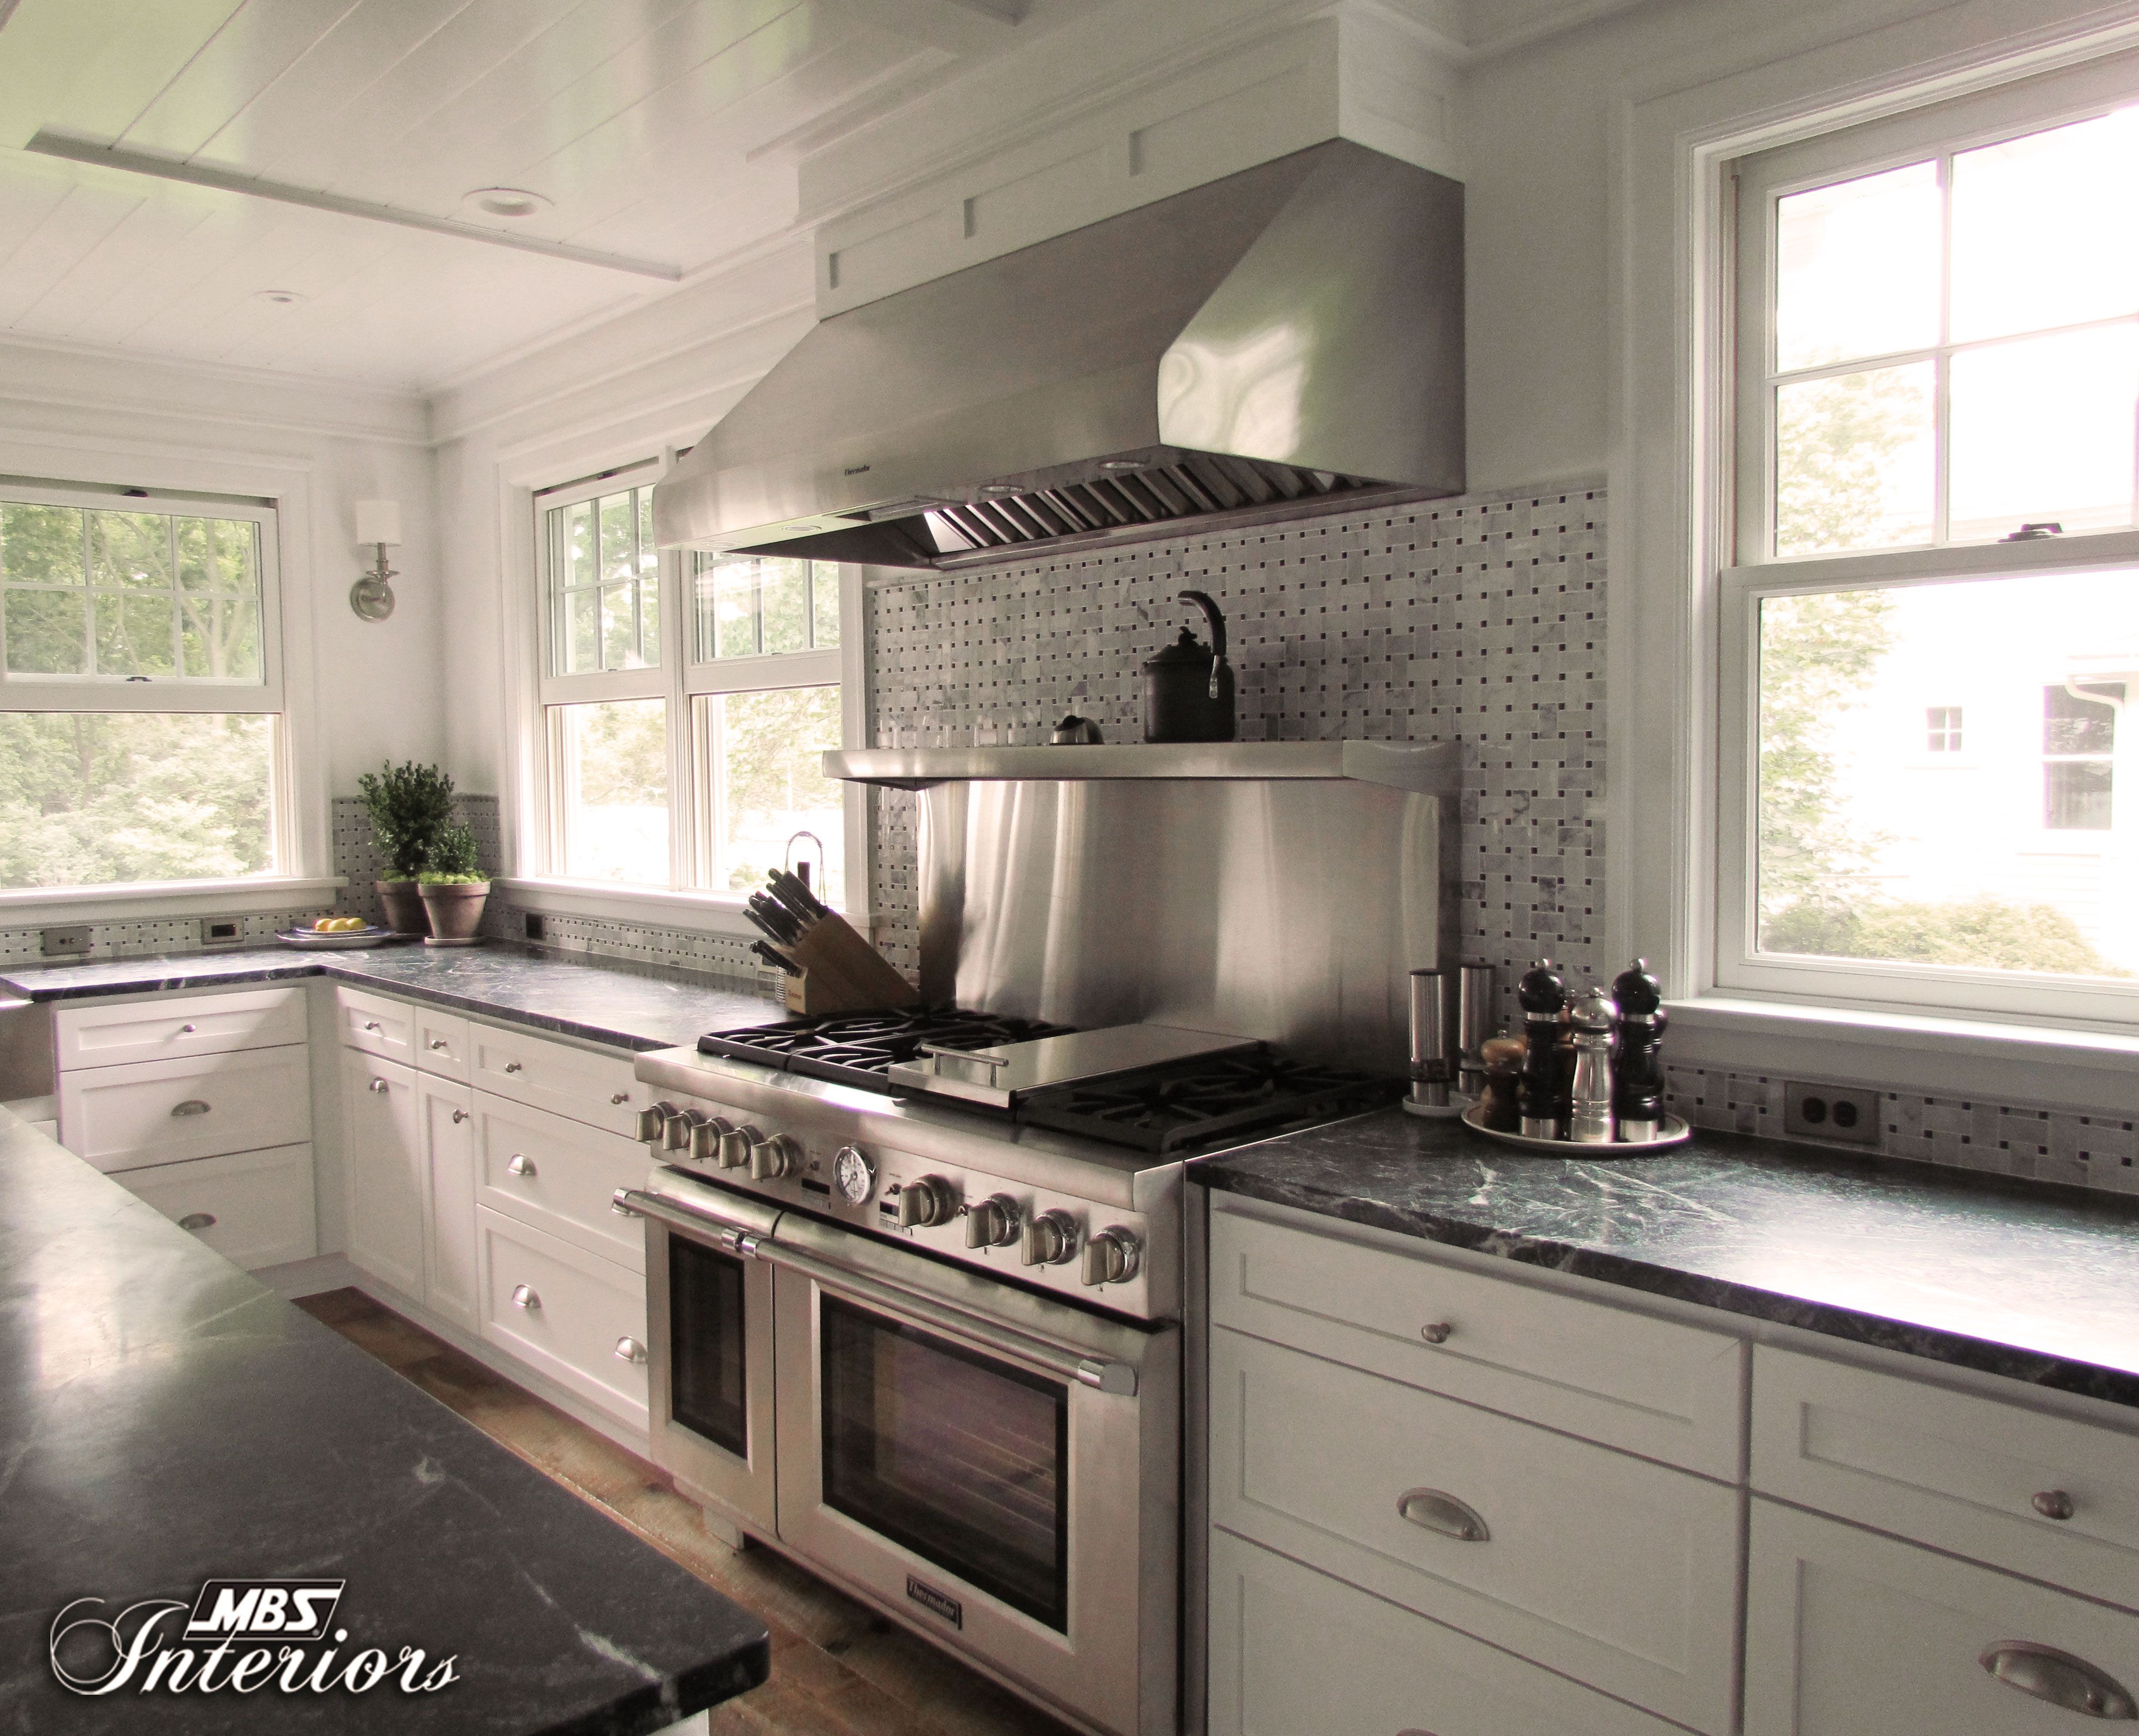 Homeowners Remodeled A Farmhouse Kitchen In Toledo Ohio And The Result Is Wow The Kitchen Now Has A Fresh Air With Images Kitchen Interior Kitchen Kitchen Range Hood